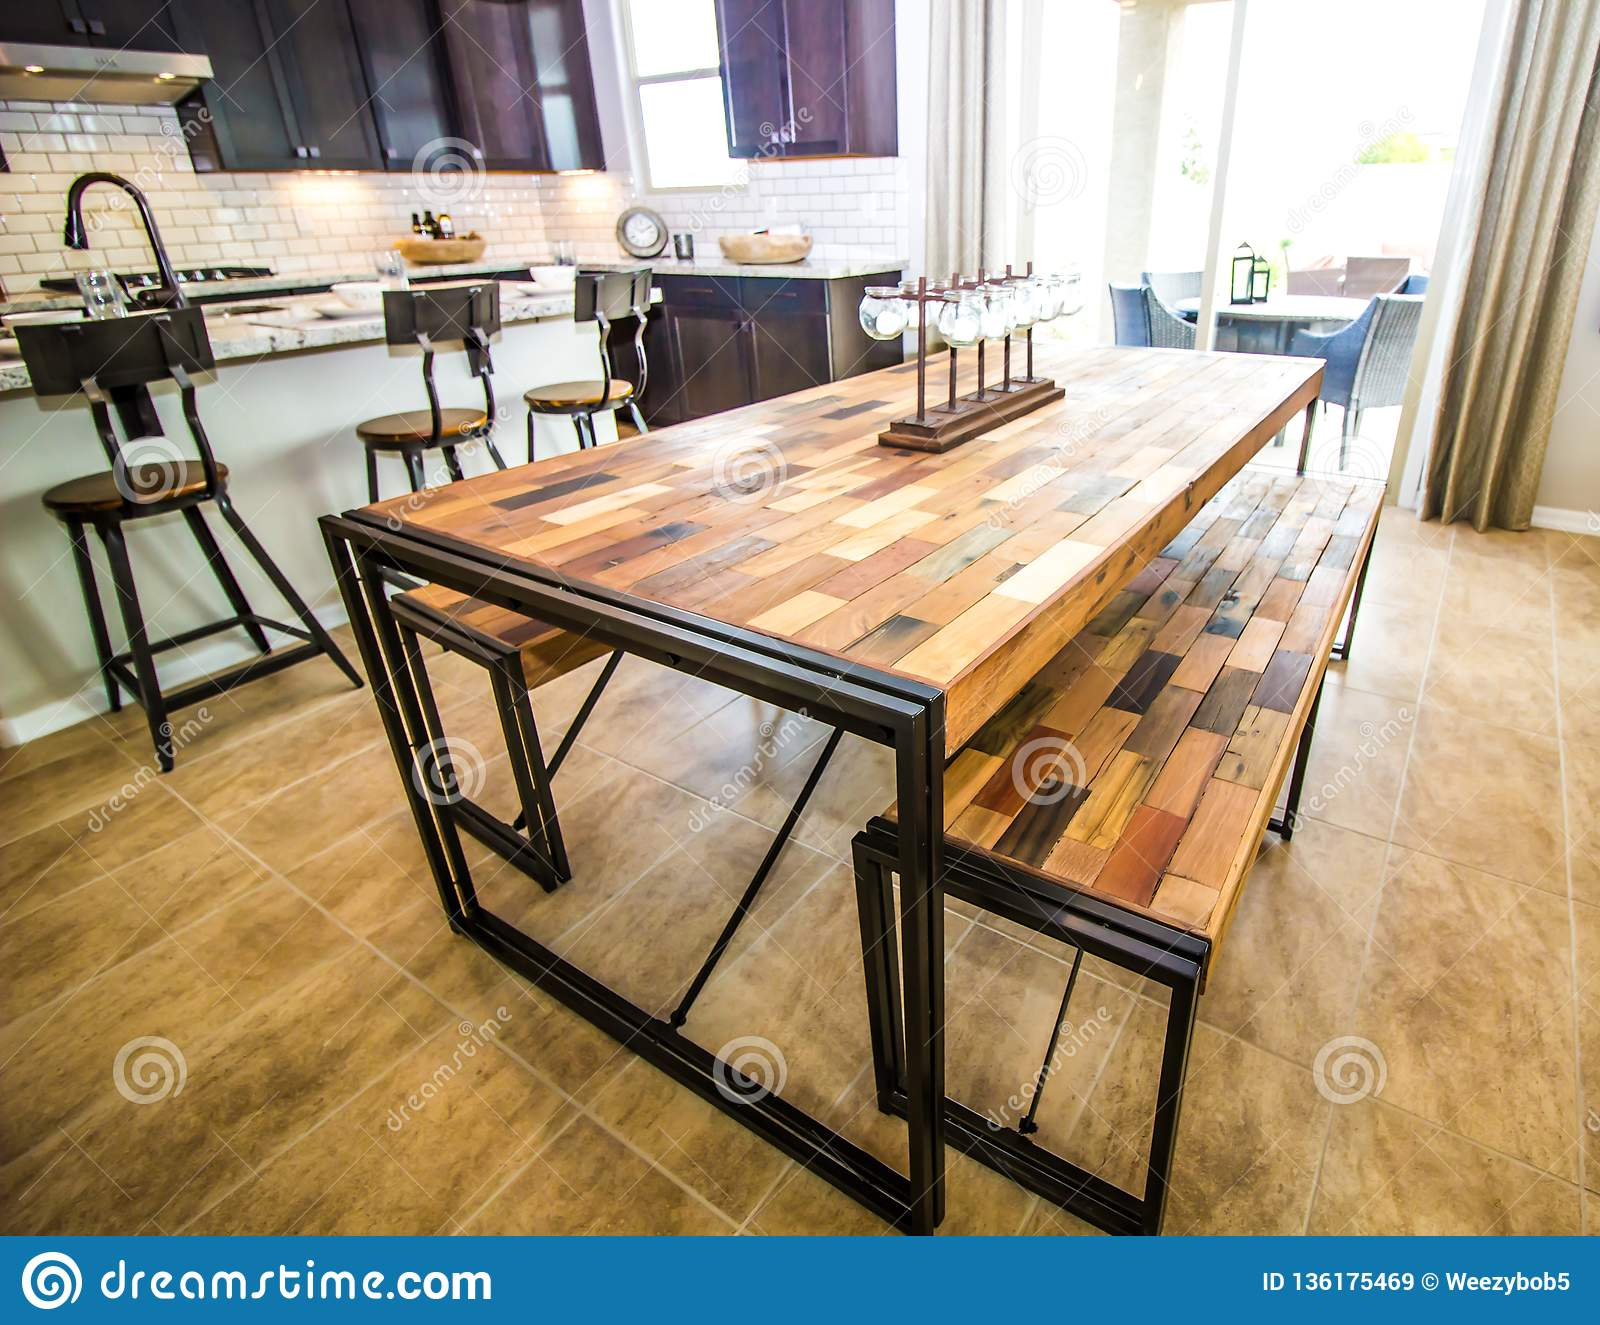 Casual Dining Table In Modern Kitchen Stock Image Image Of Squares Benches 136175469